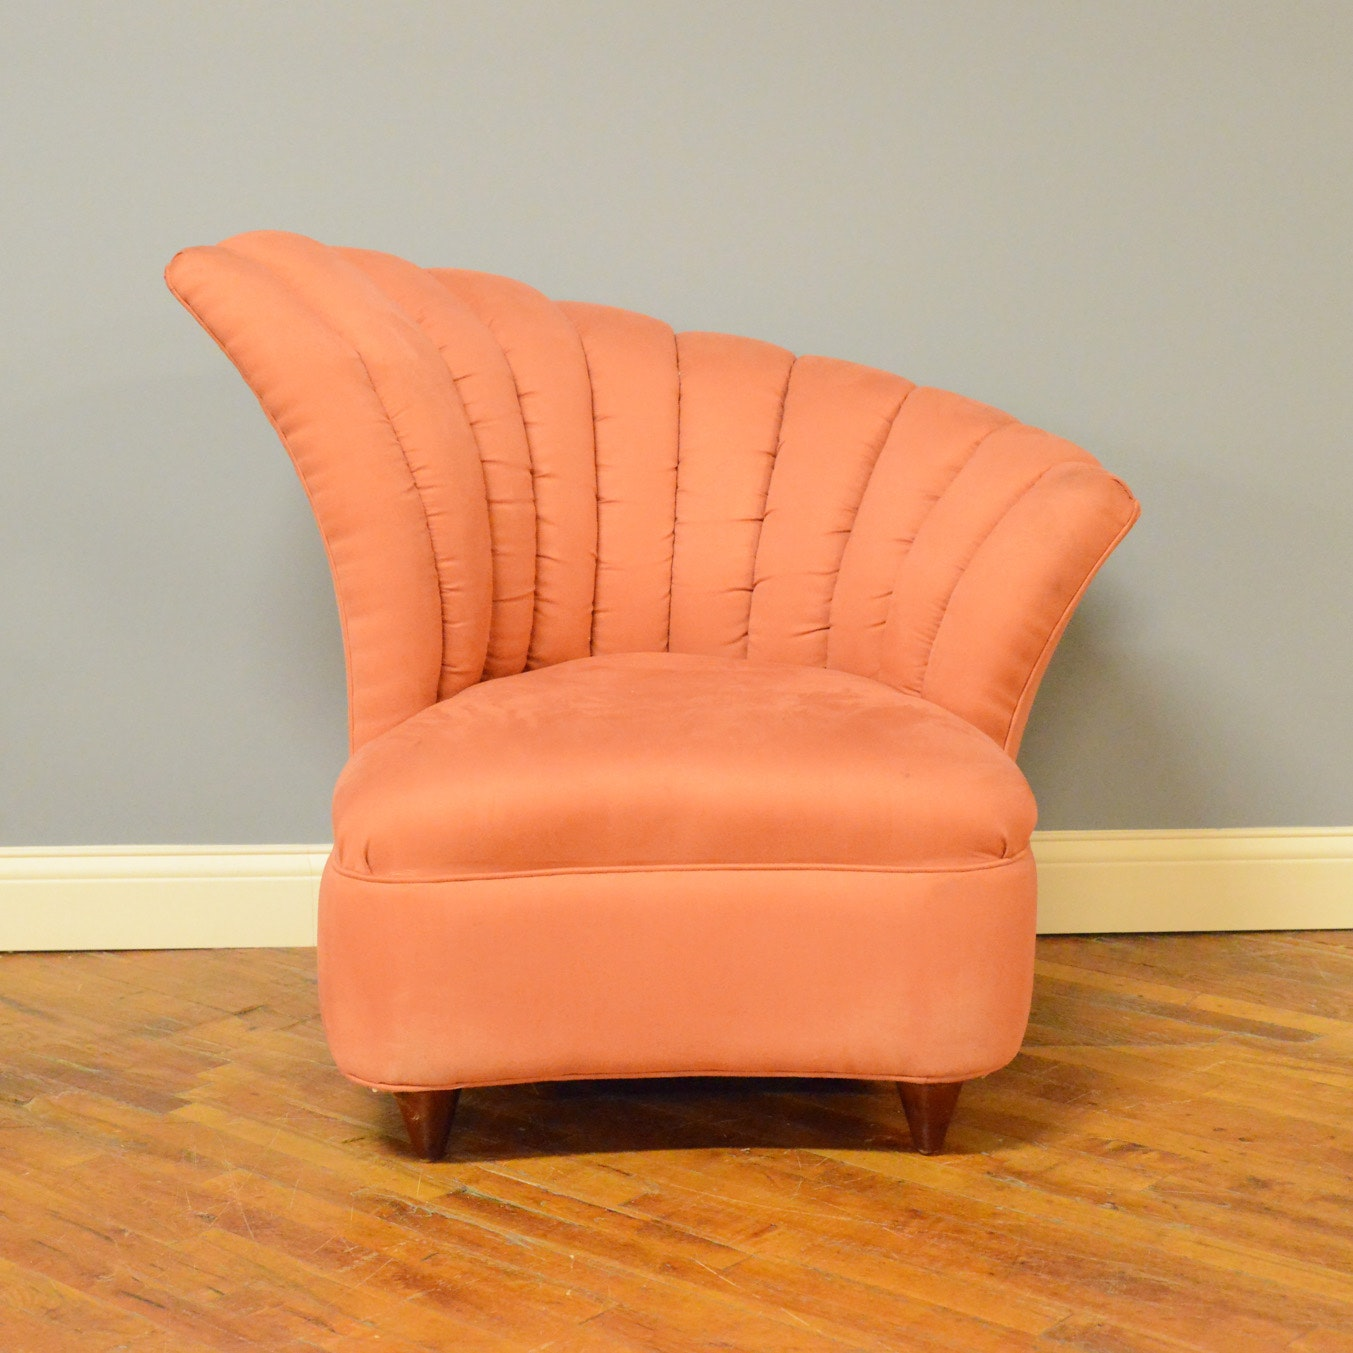 Vintage Asymmetrical Channel Back Pink Upholstered Chair ...